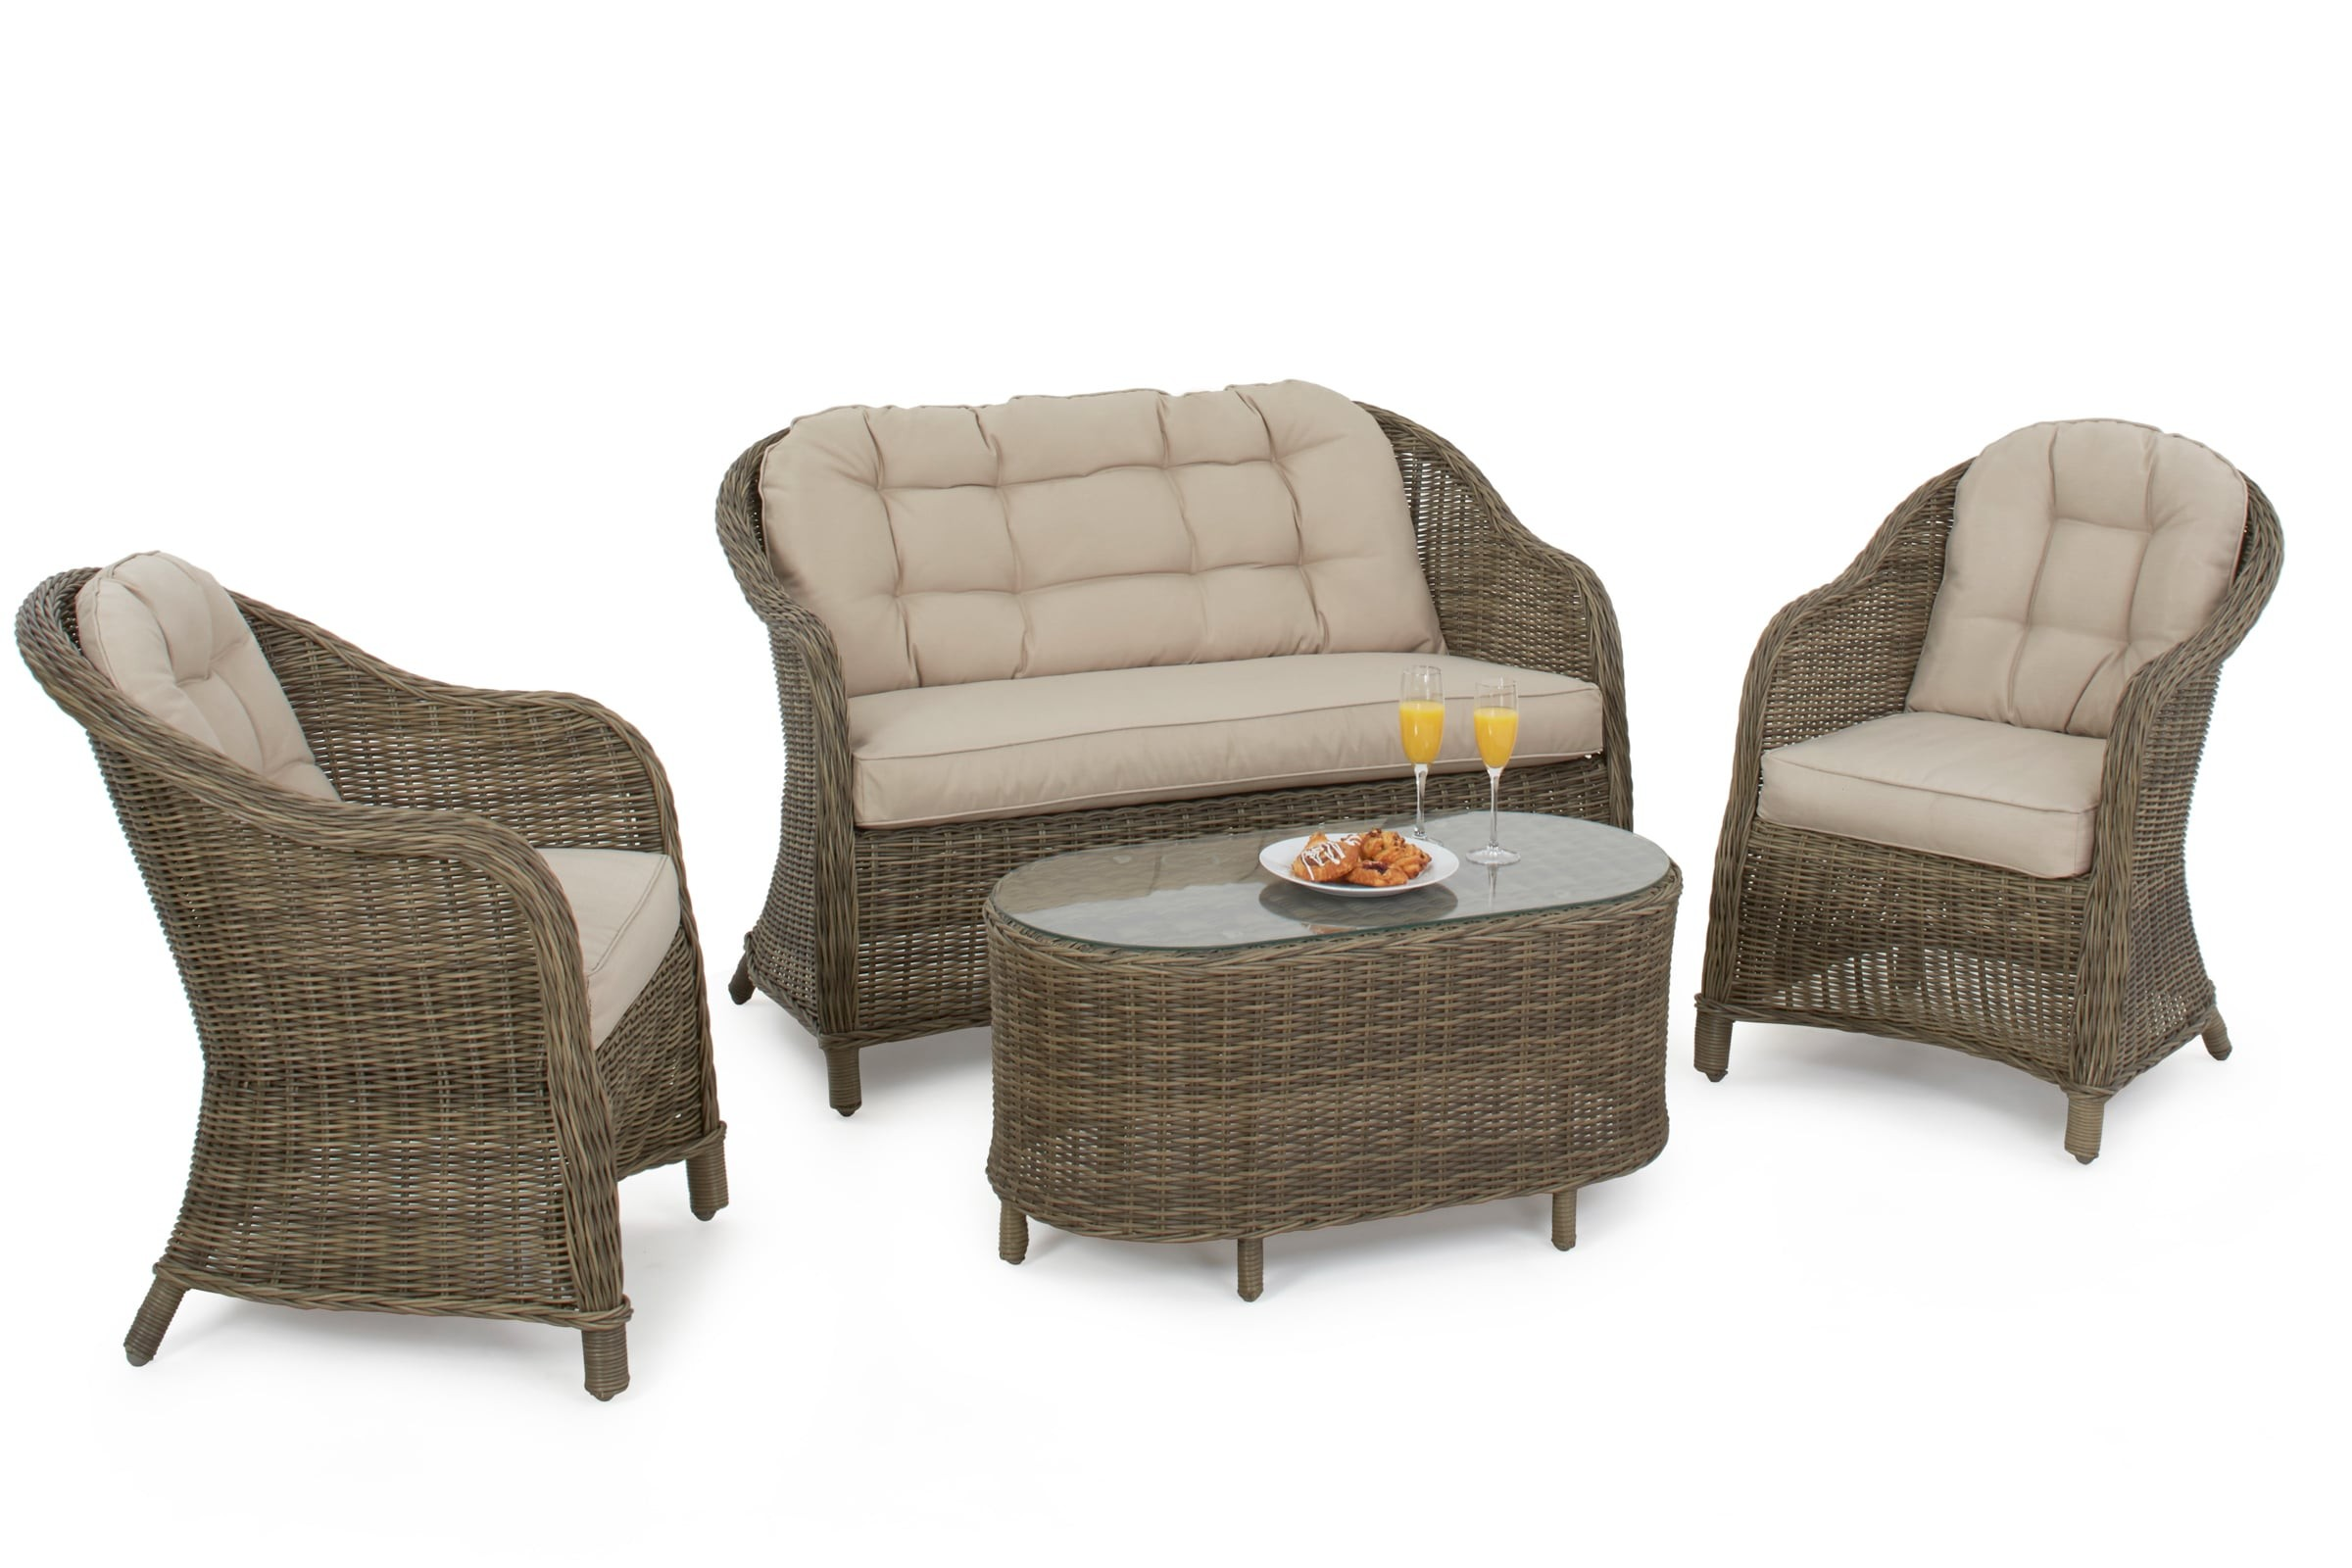 Amaze Your Friends with Patio and Rattan Garden Sofa Sets